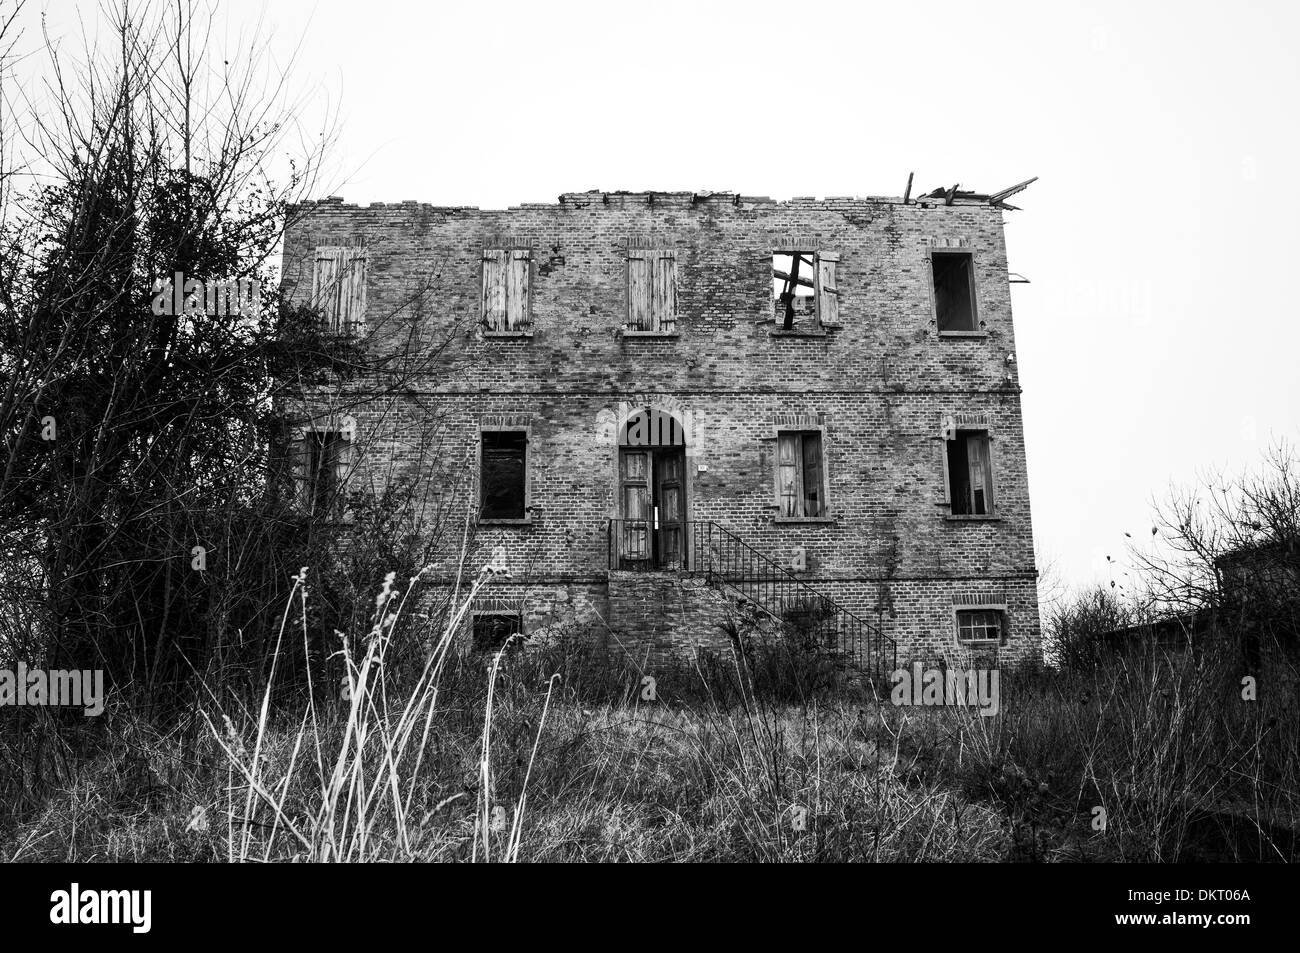 Comacchio Valleys. Italy. Abandoned old building - Stock Image